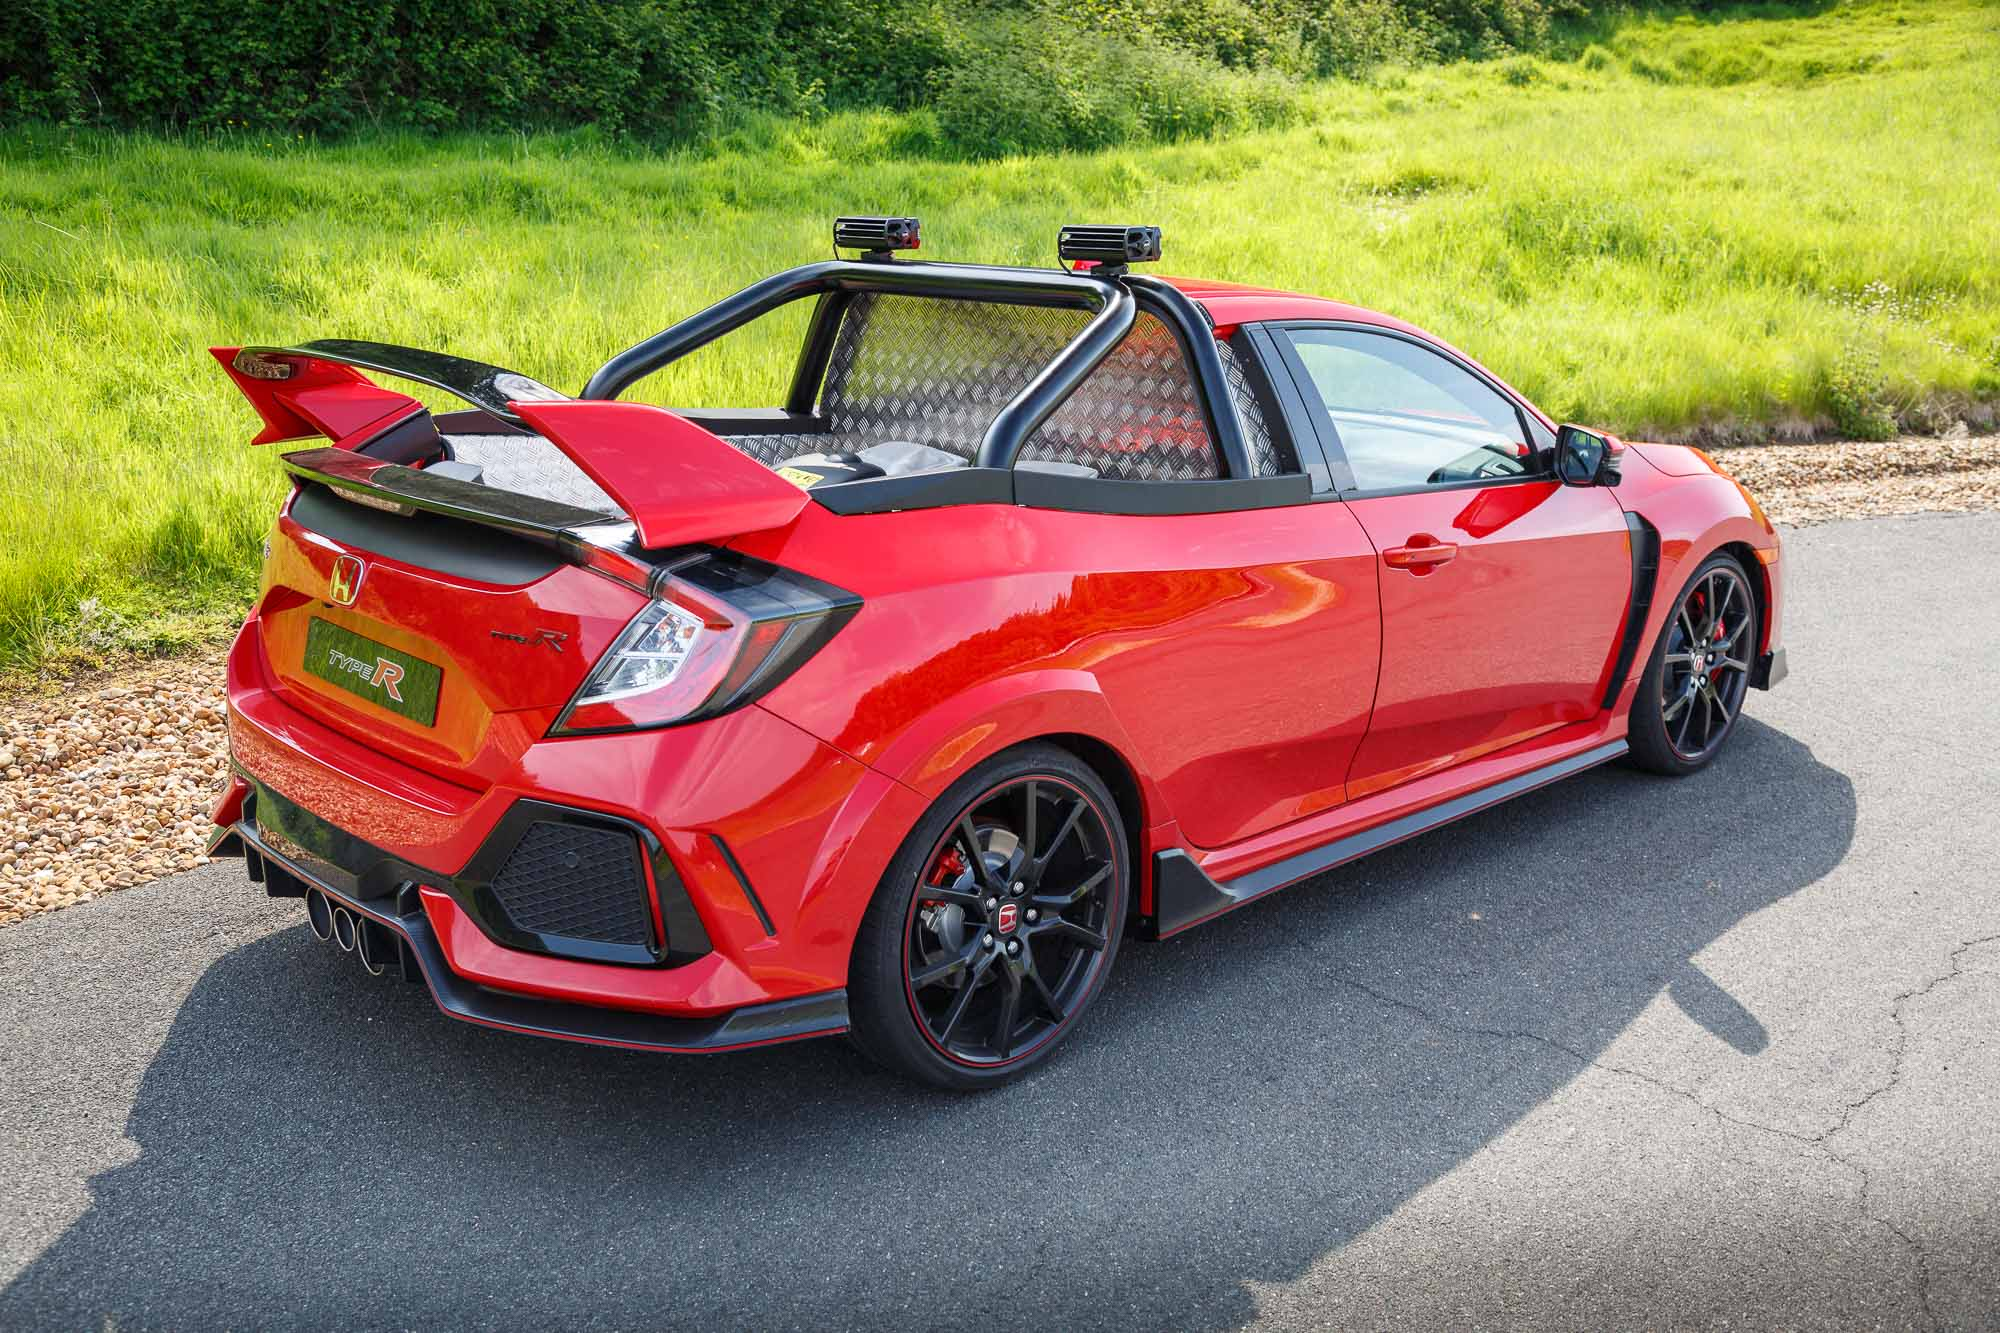 honda civic type r pickup truck 165mph and 0 62mph in under 6 secs. Black Bedroom Furniture Sets. Home Design Ideas